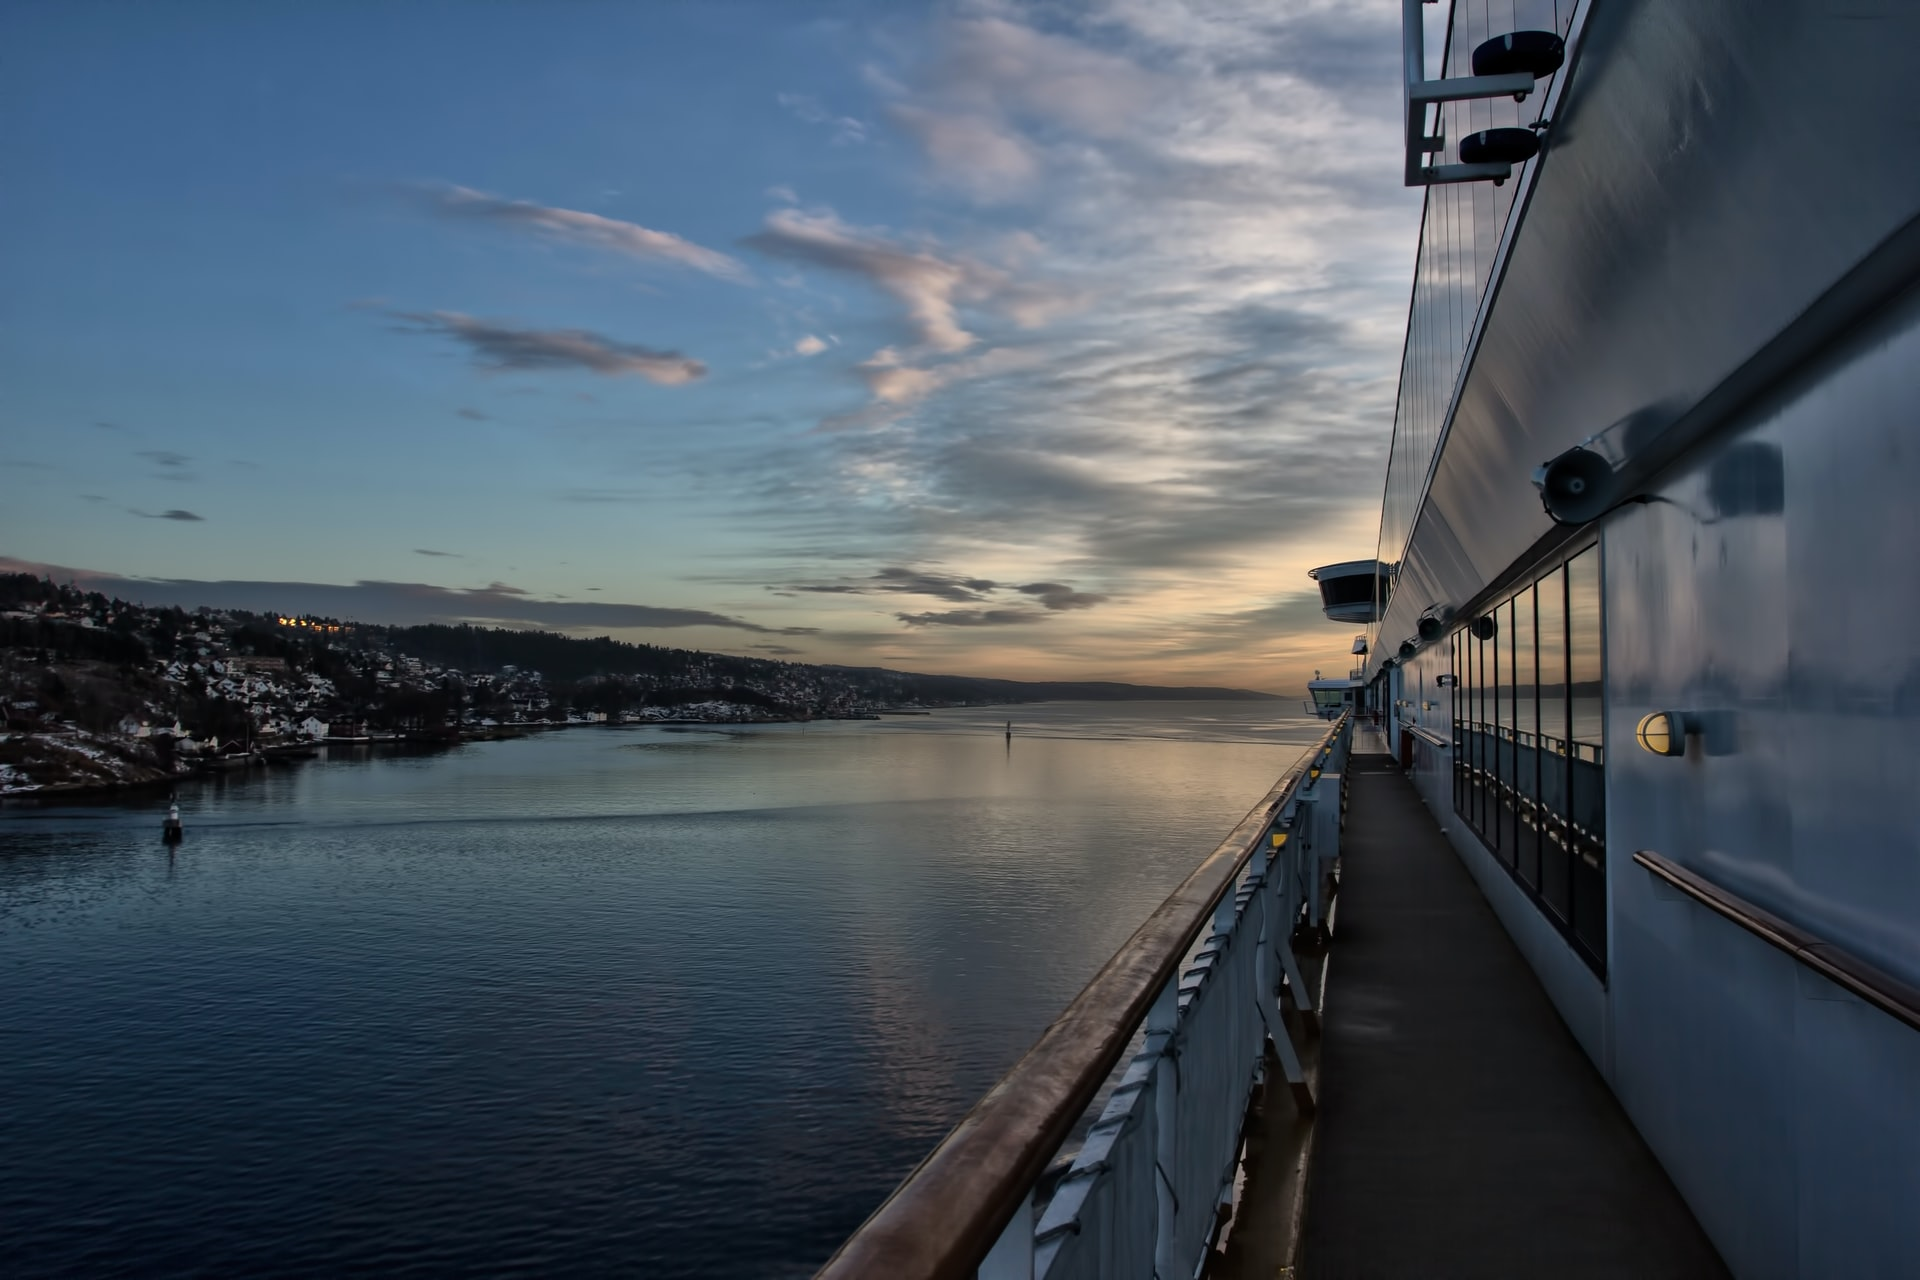 Cruise Industry Finally Shedding Delta Variant Concerns, Full Steam Ahead For 2022 Recovery